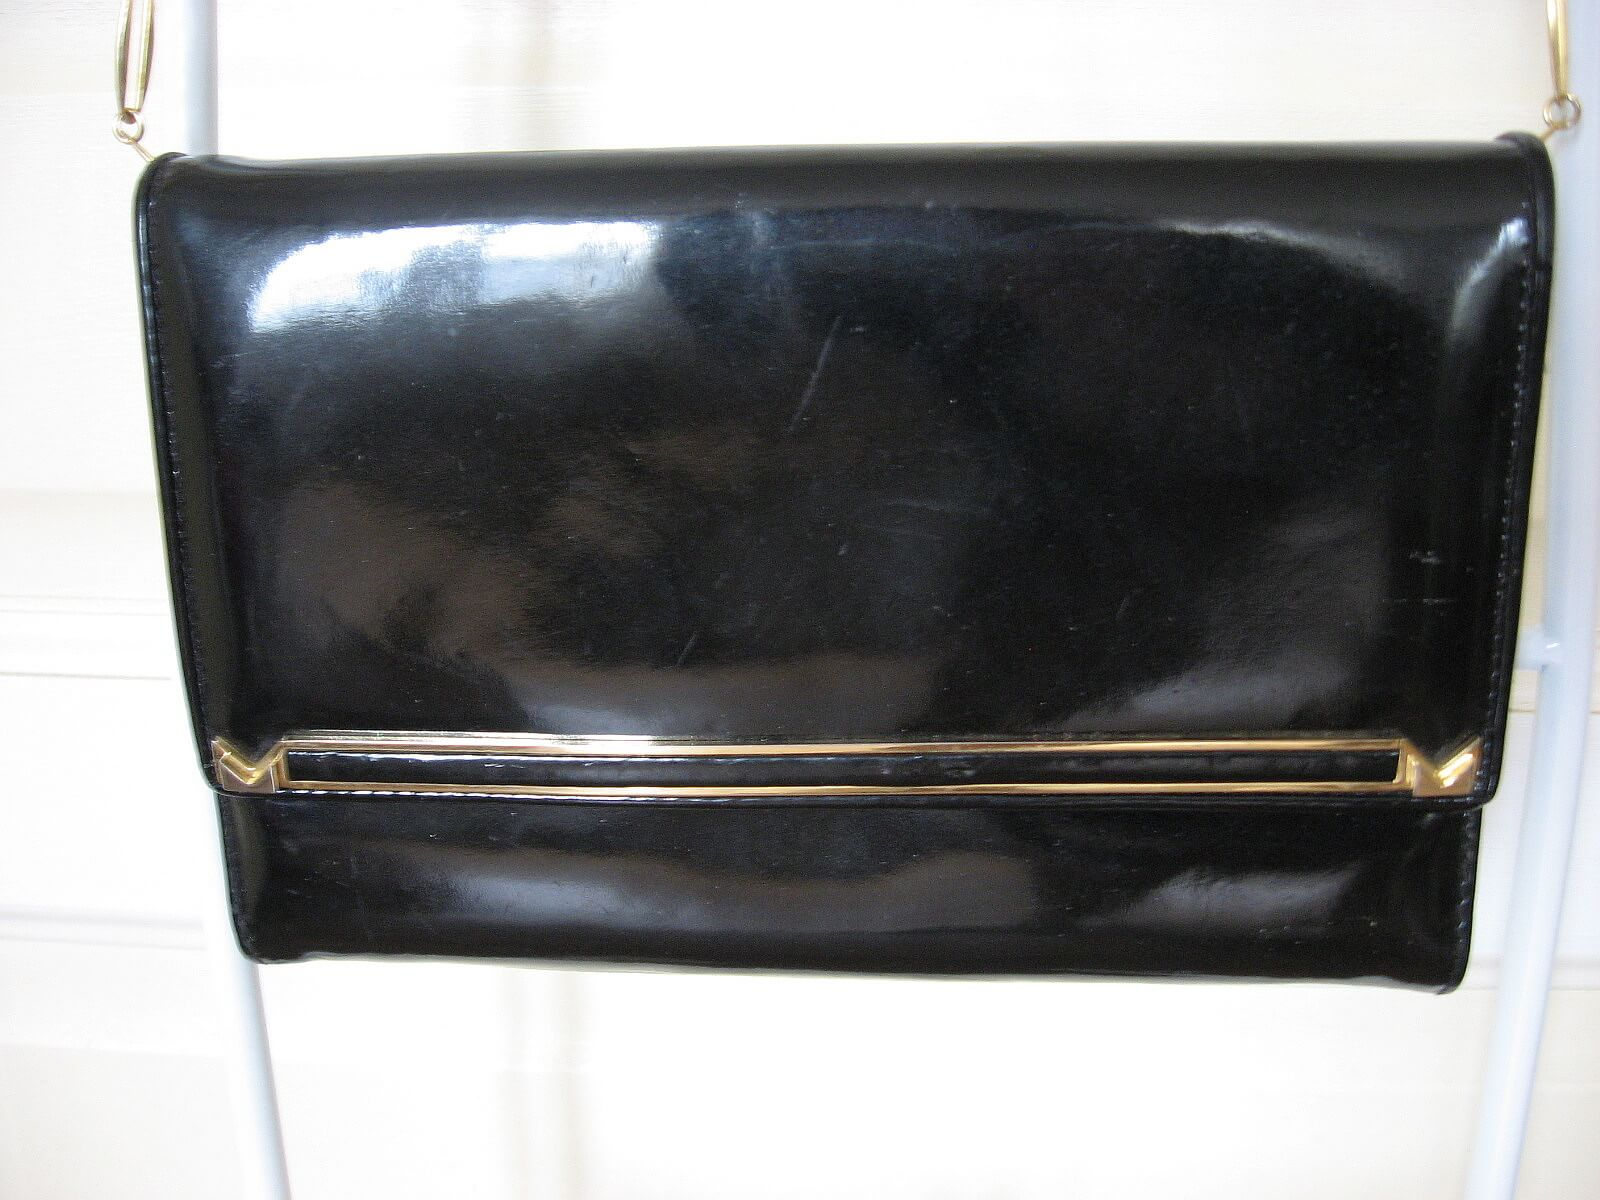 1960s black patent and suede leather hanbag purse at PumpjackPiddlewick.